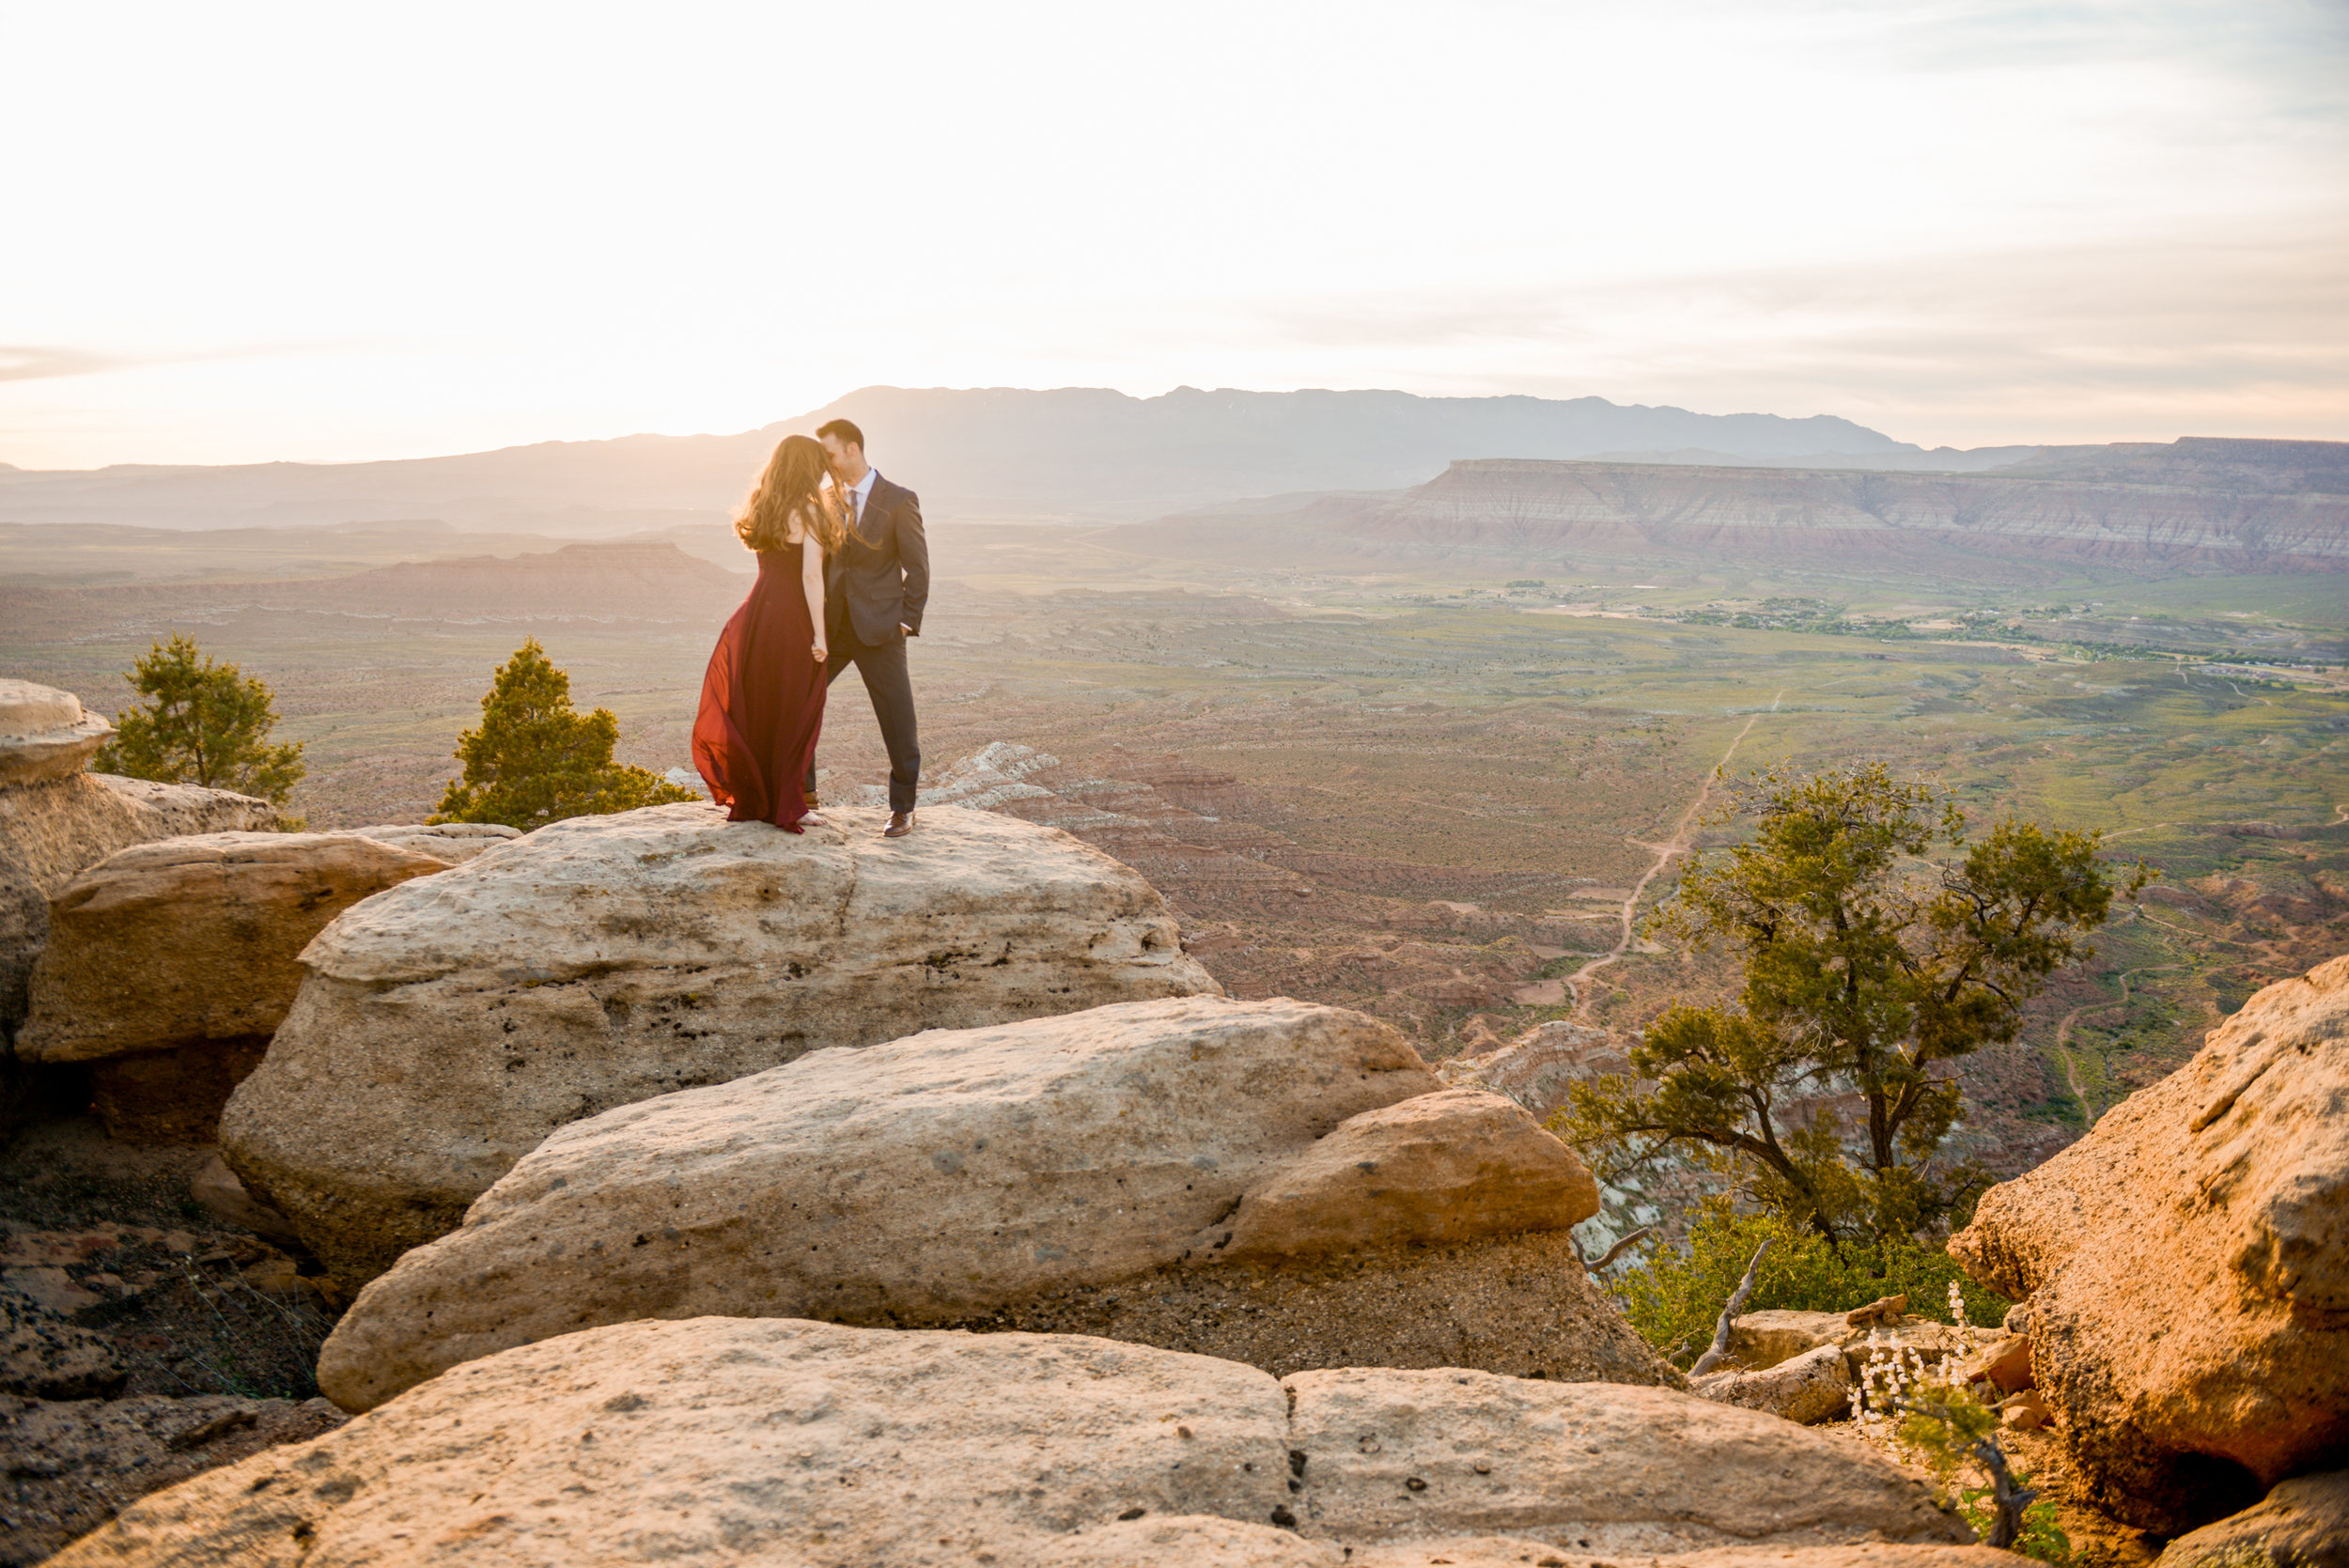 zionnationalparkengagementphotos (55 of 53).jpg